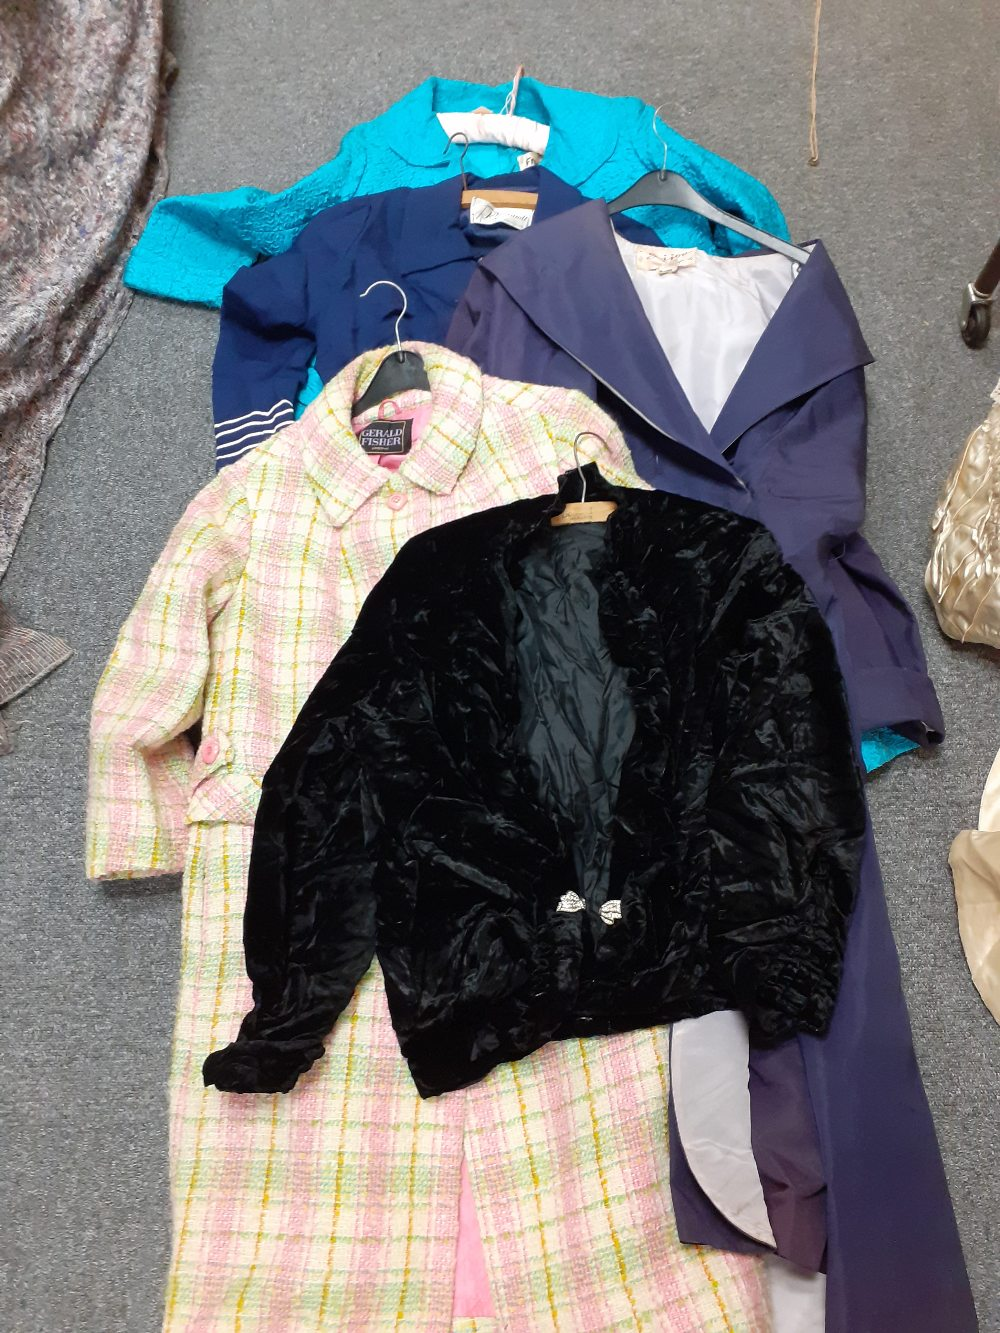 COLLECTION OF VINTAGE CLOTHES